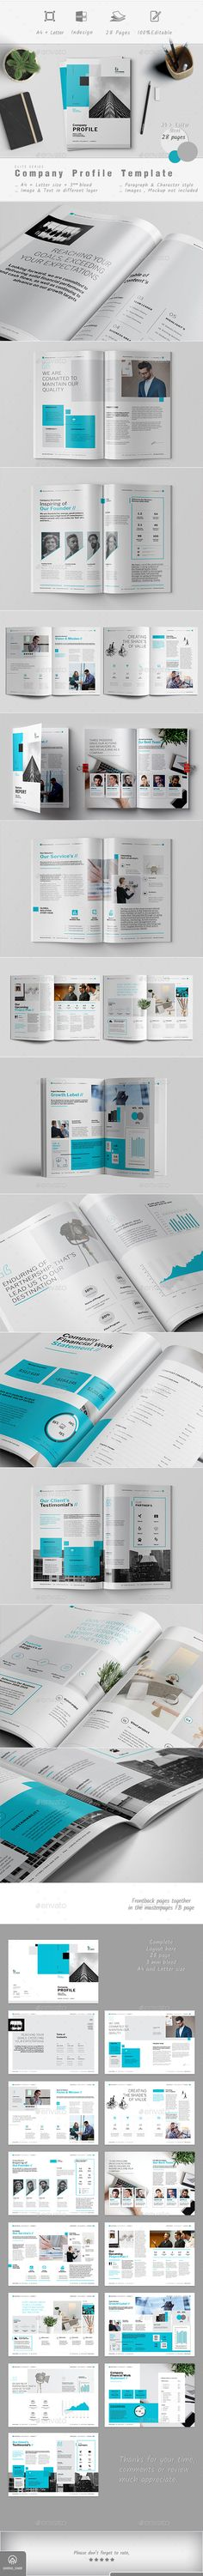 Company Profile — InDesign INDD #profile #classic brochure • Download ➝ https://graphicriver.net/item/company-profile/18978410?ref=pxcr